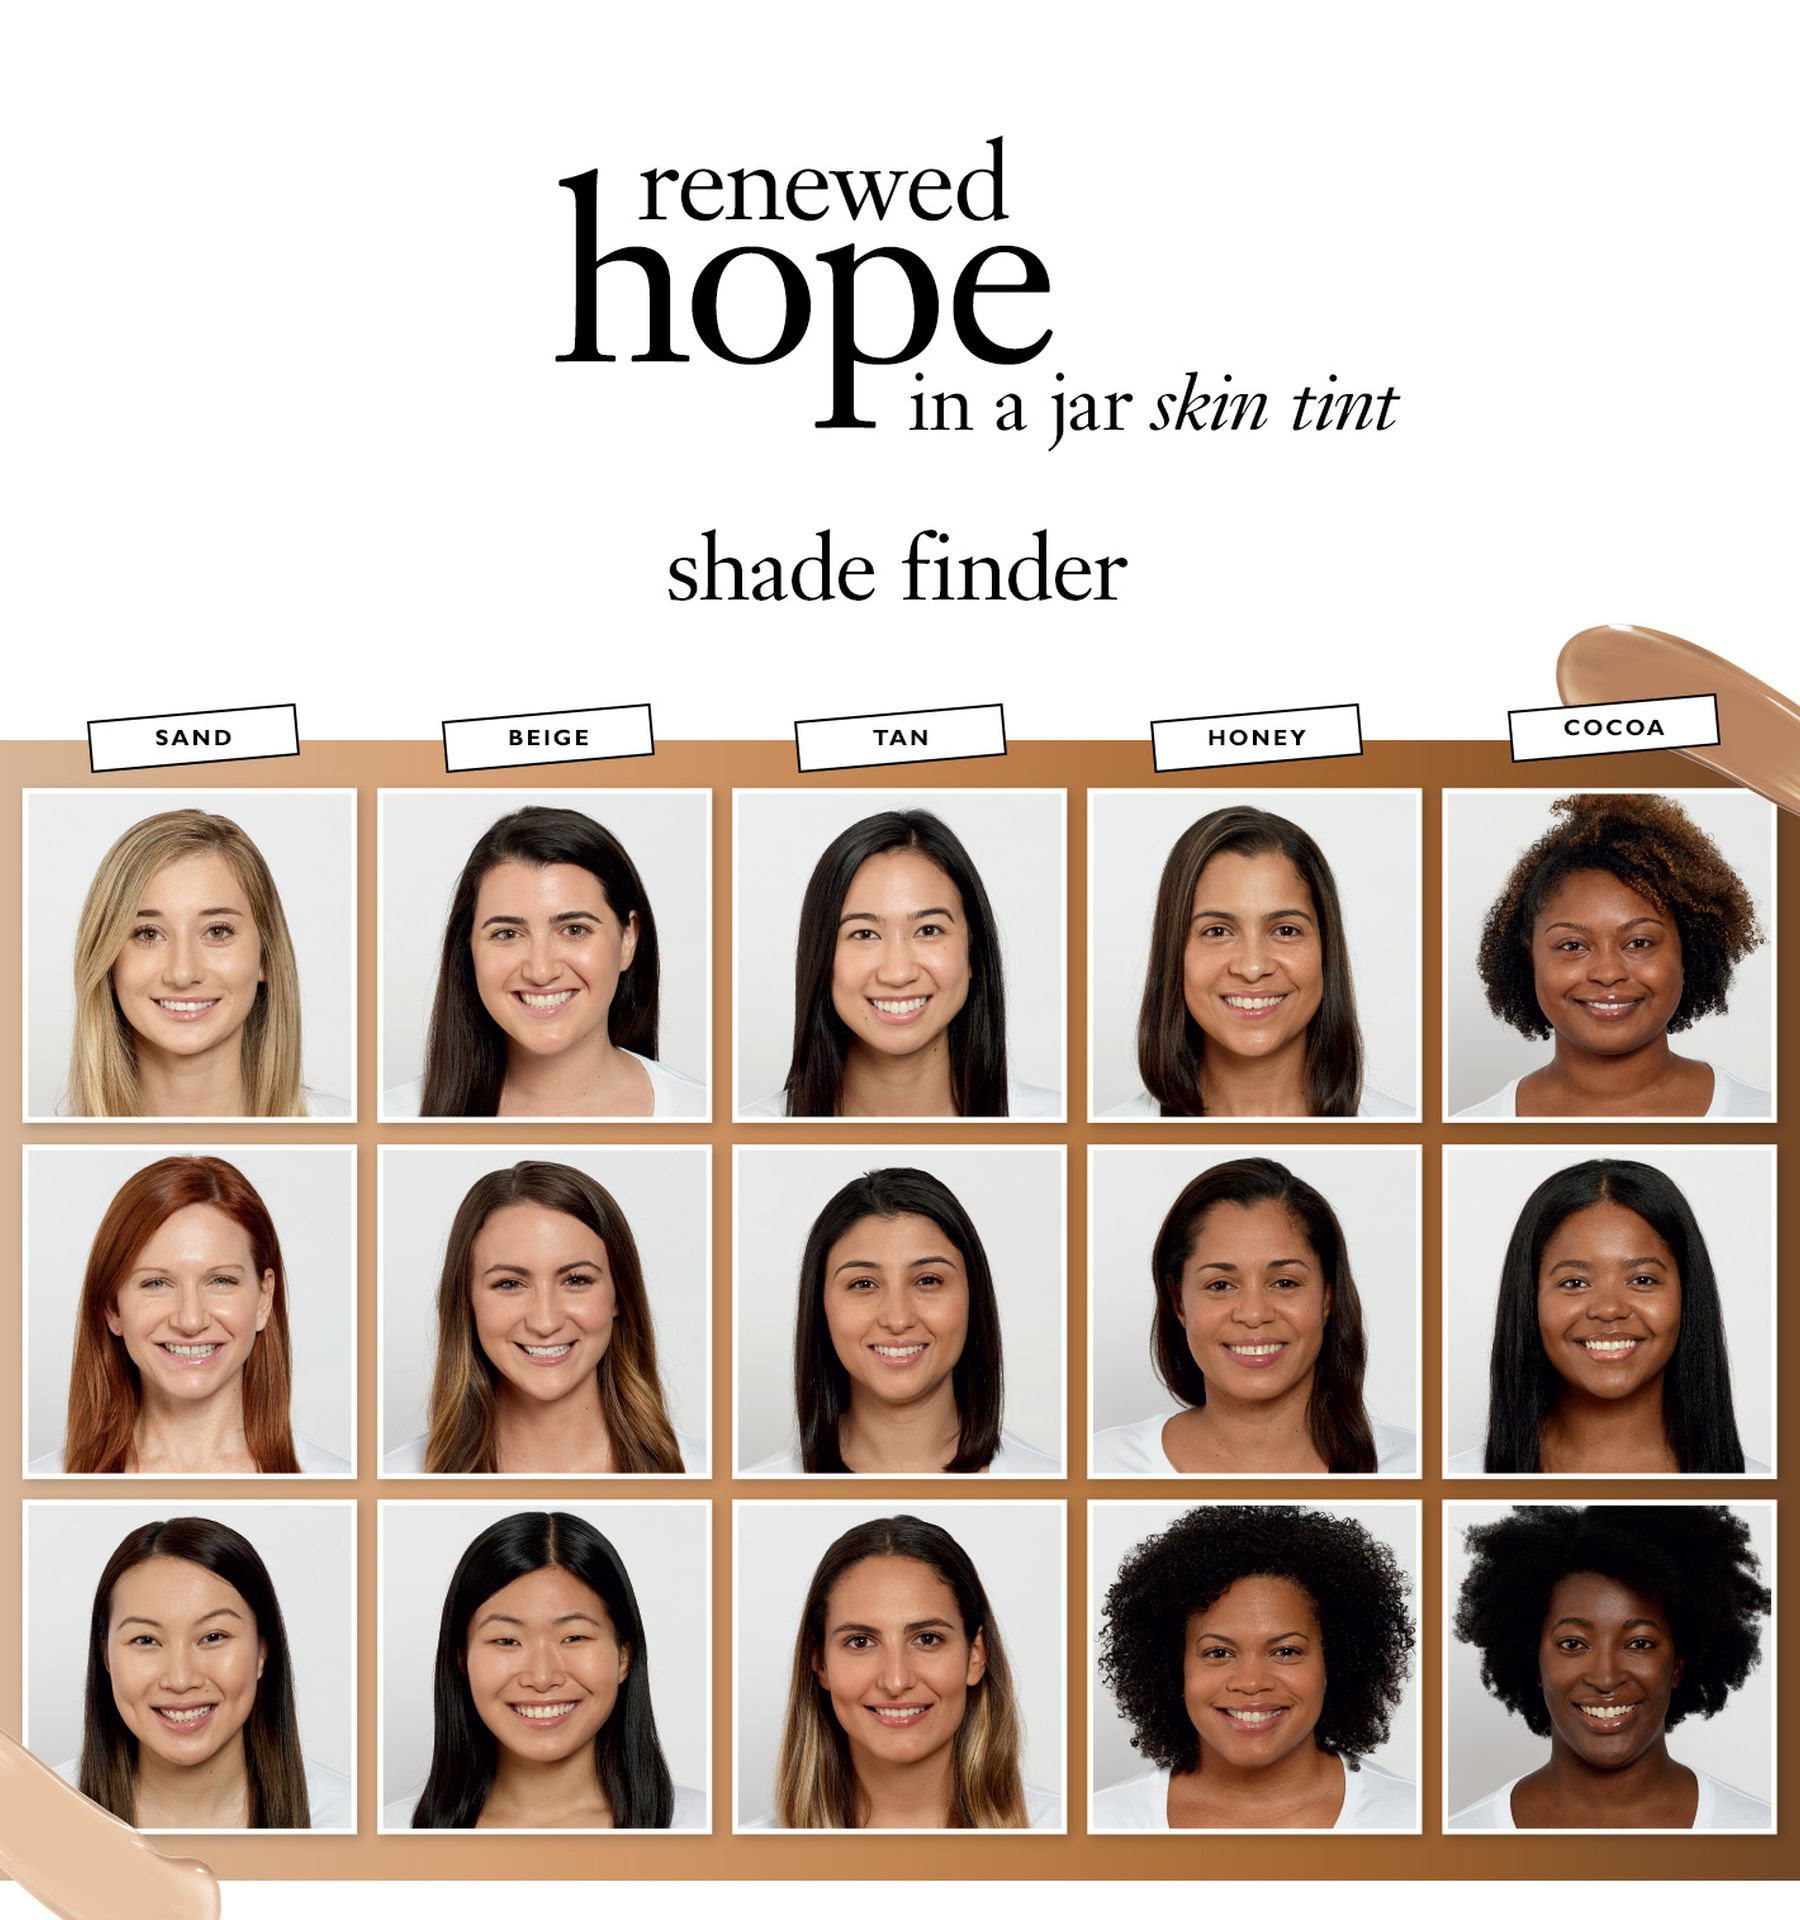 Philosophy Renewed Hope in a Jar Skin Tint shade finder